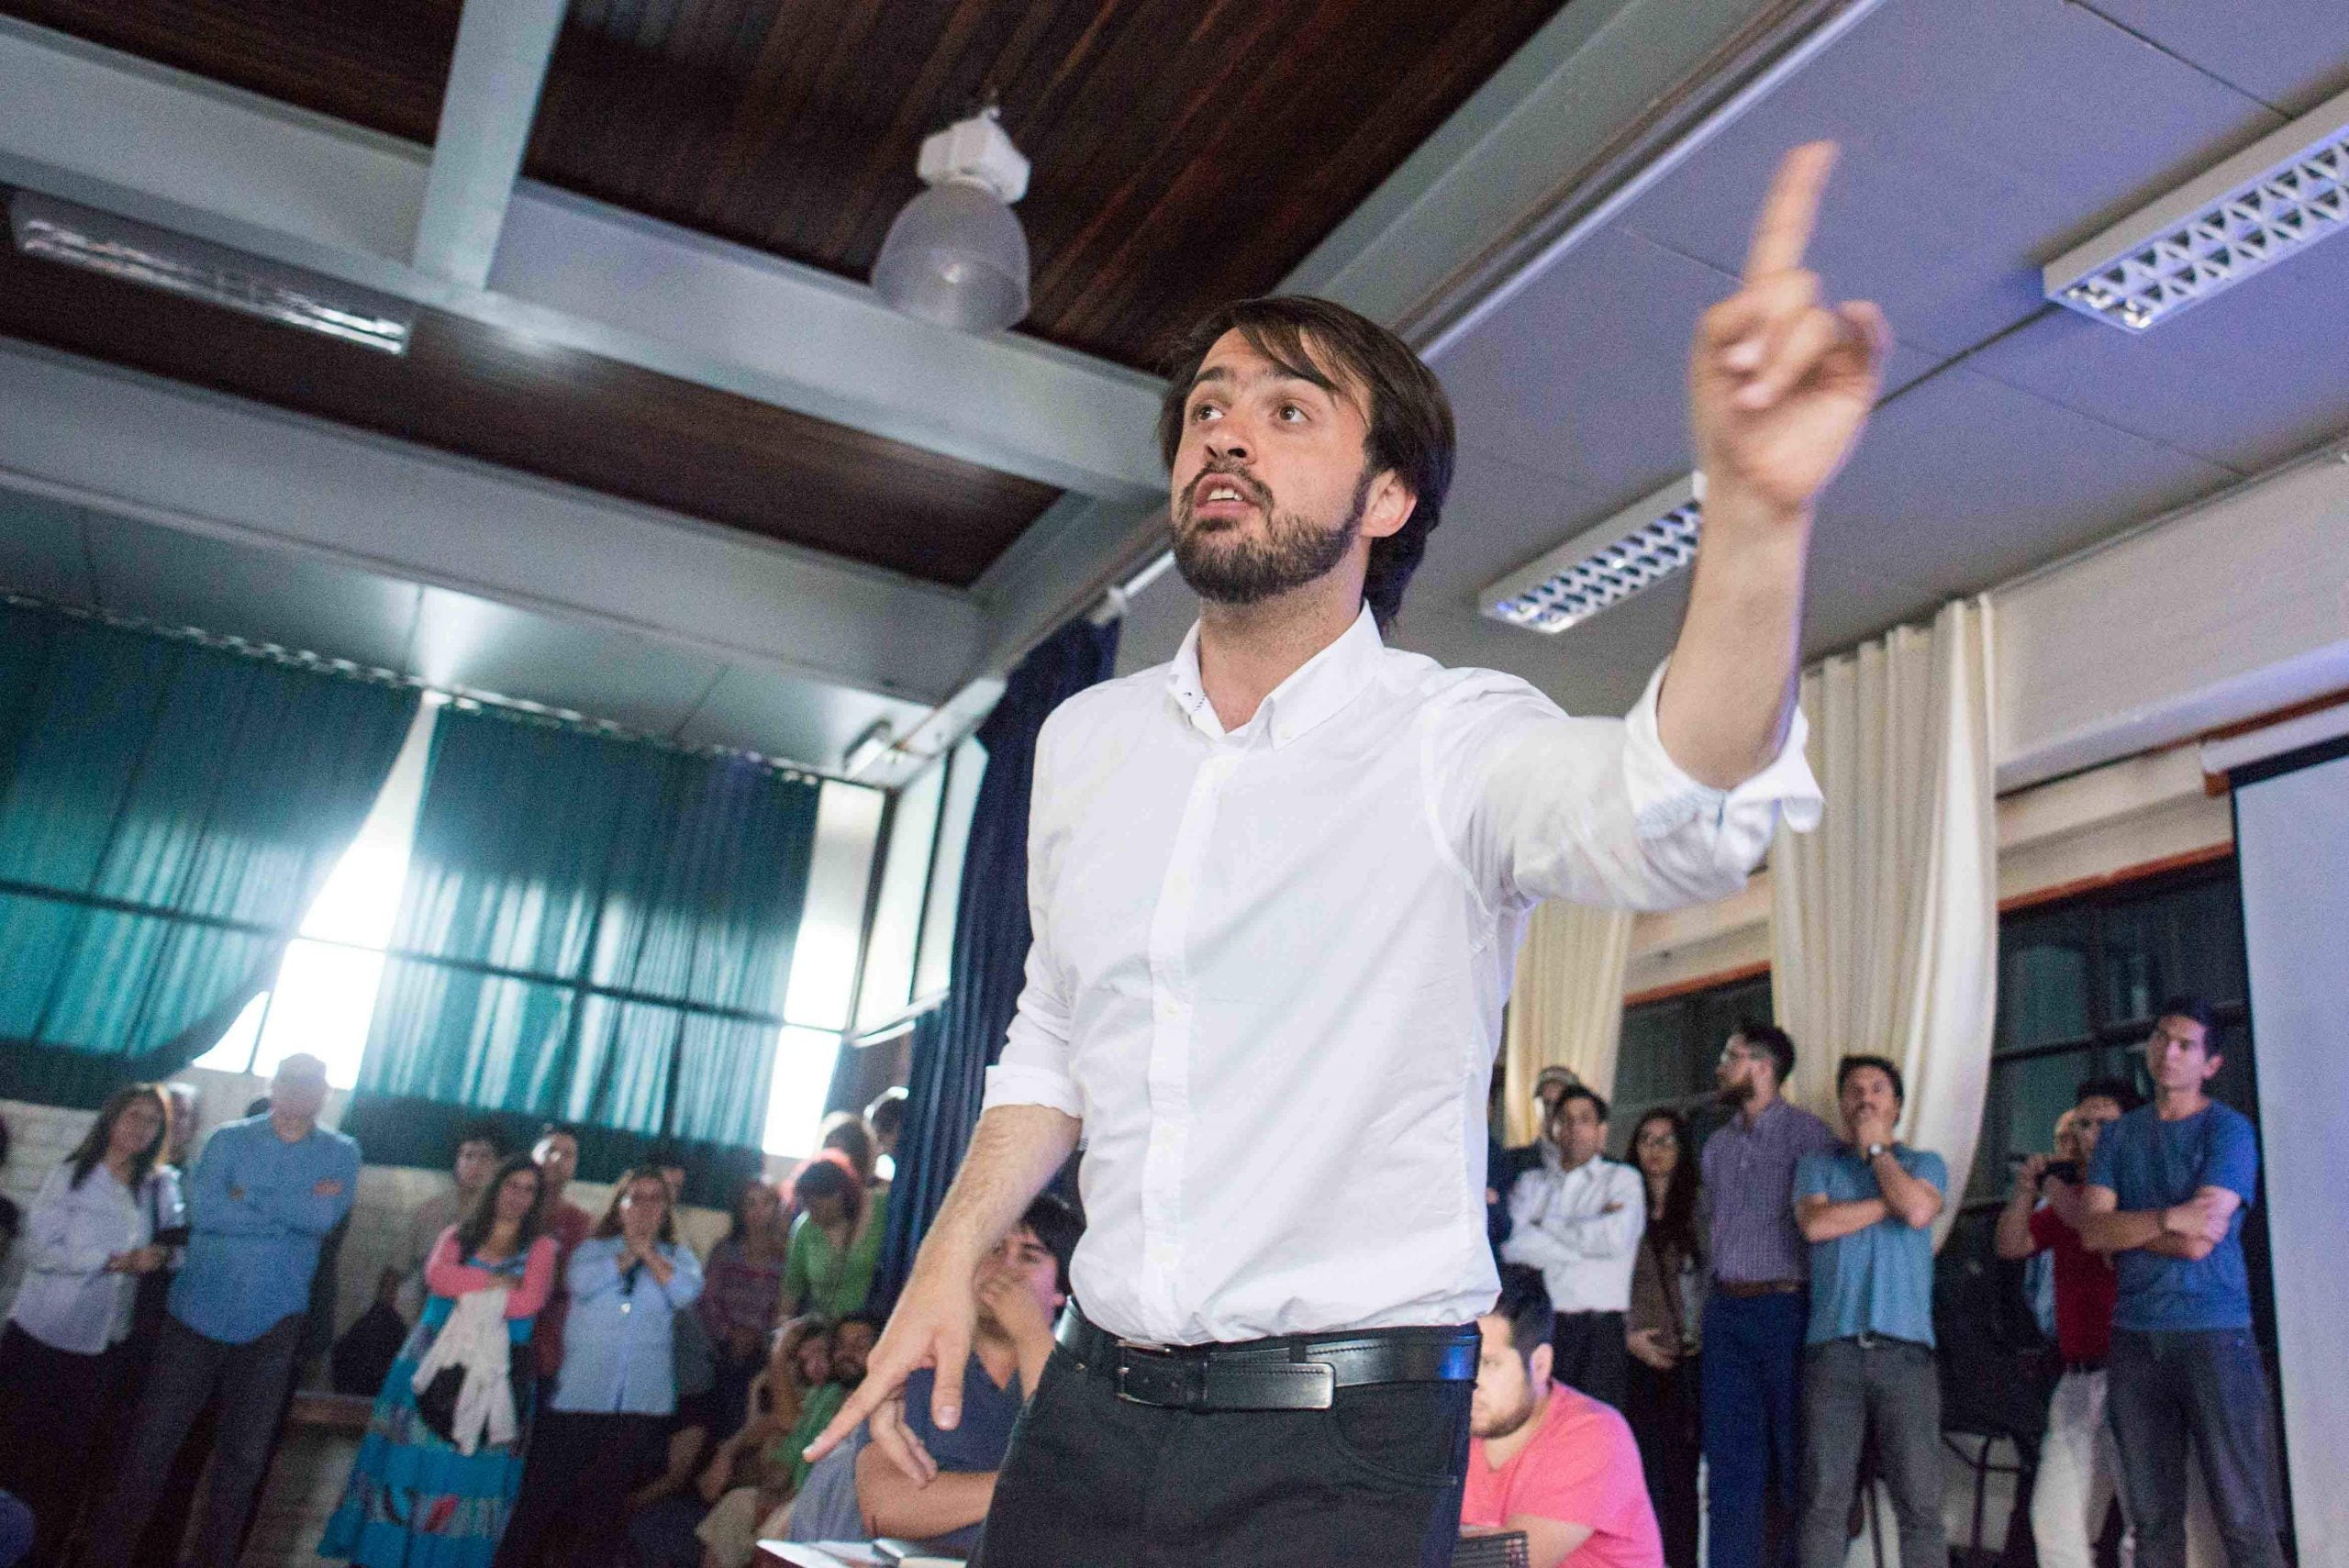 Meet Jorge Sharp, the rising star of Chile's left who beat right-wingers to running its second city